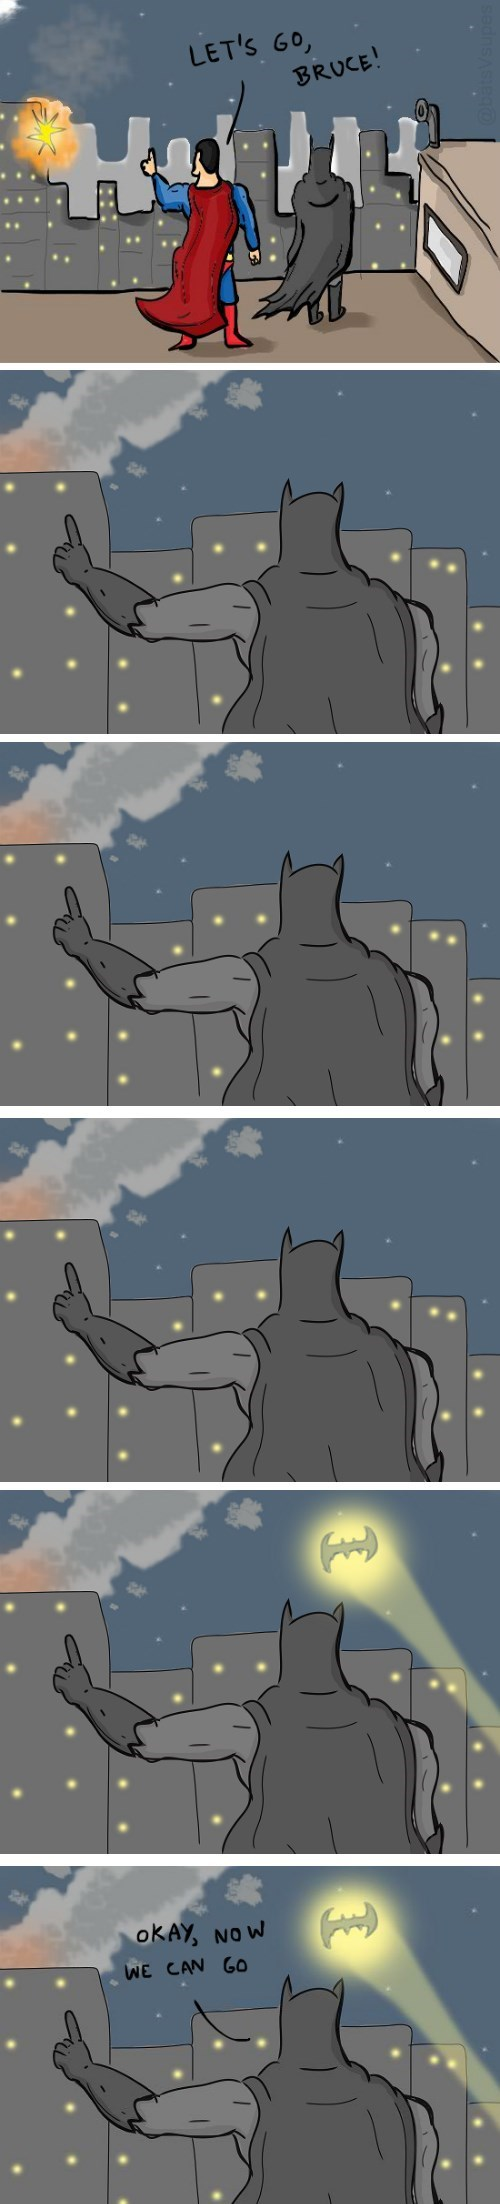 superheroes-batman-dc-wait-bat-signal-superman-web-comic